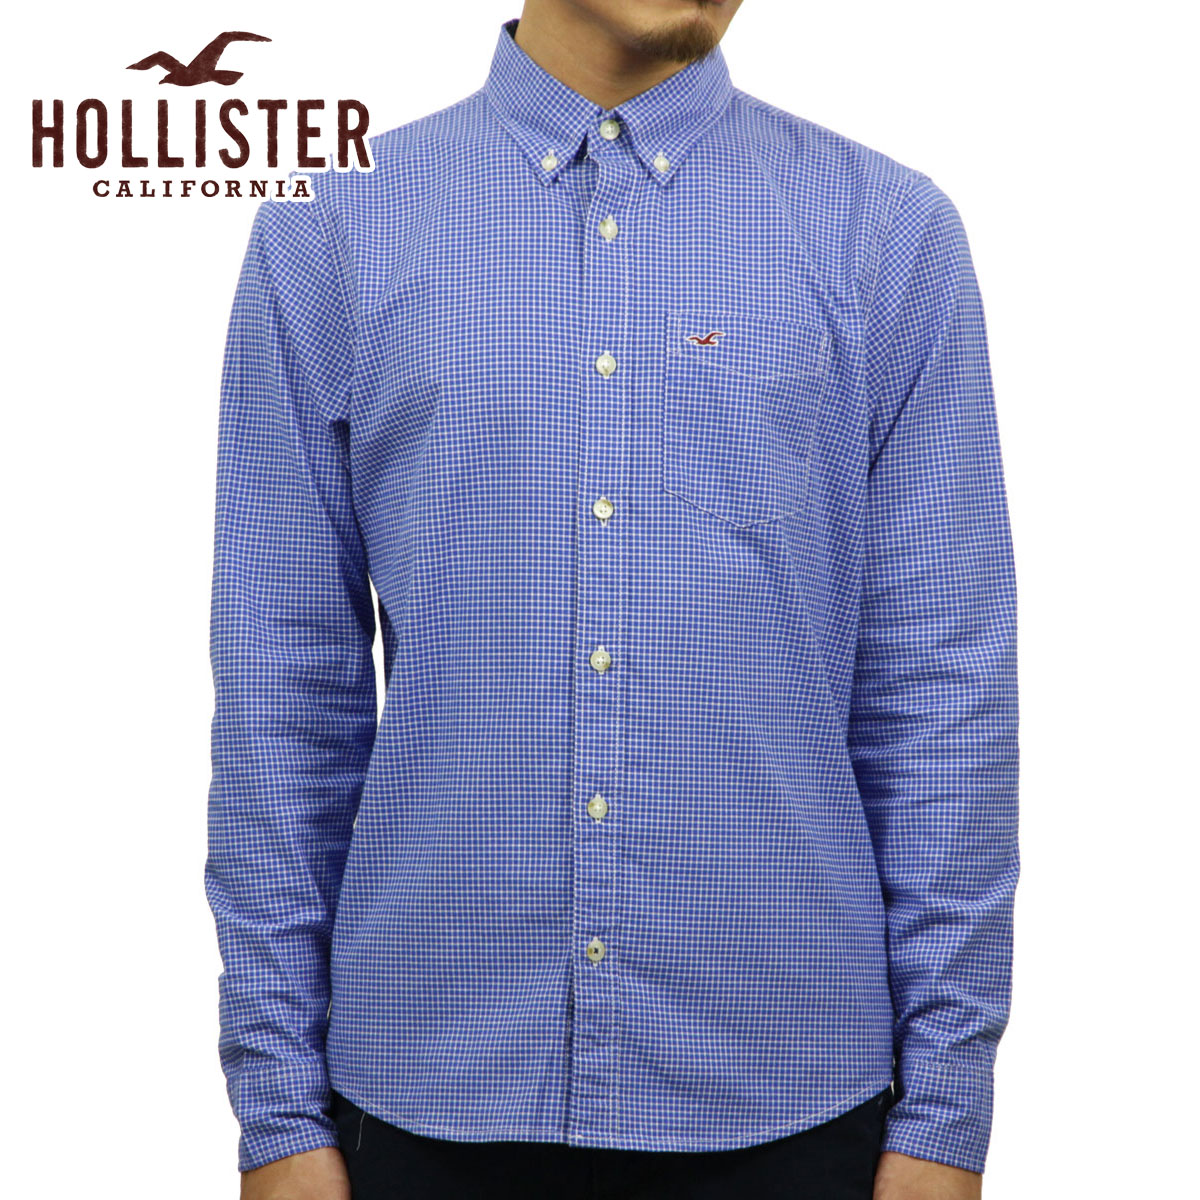 be7a535e Hori star HOLLISTER regular article men long sleeves shirt Plaid Poplin  Shirt Epic Flex 325- ...